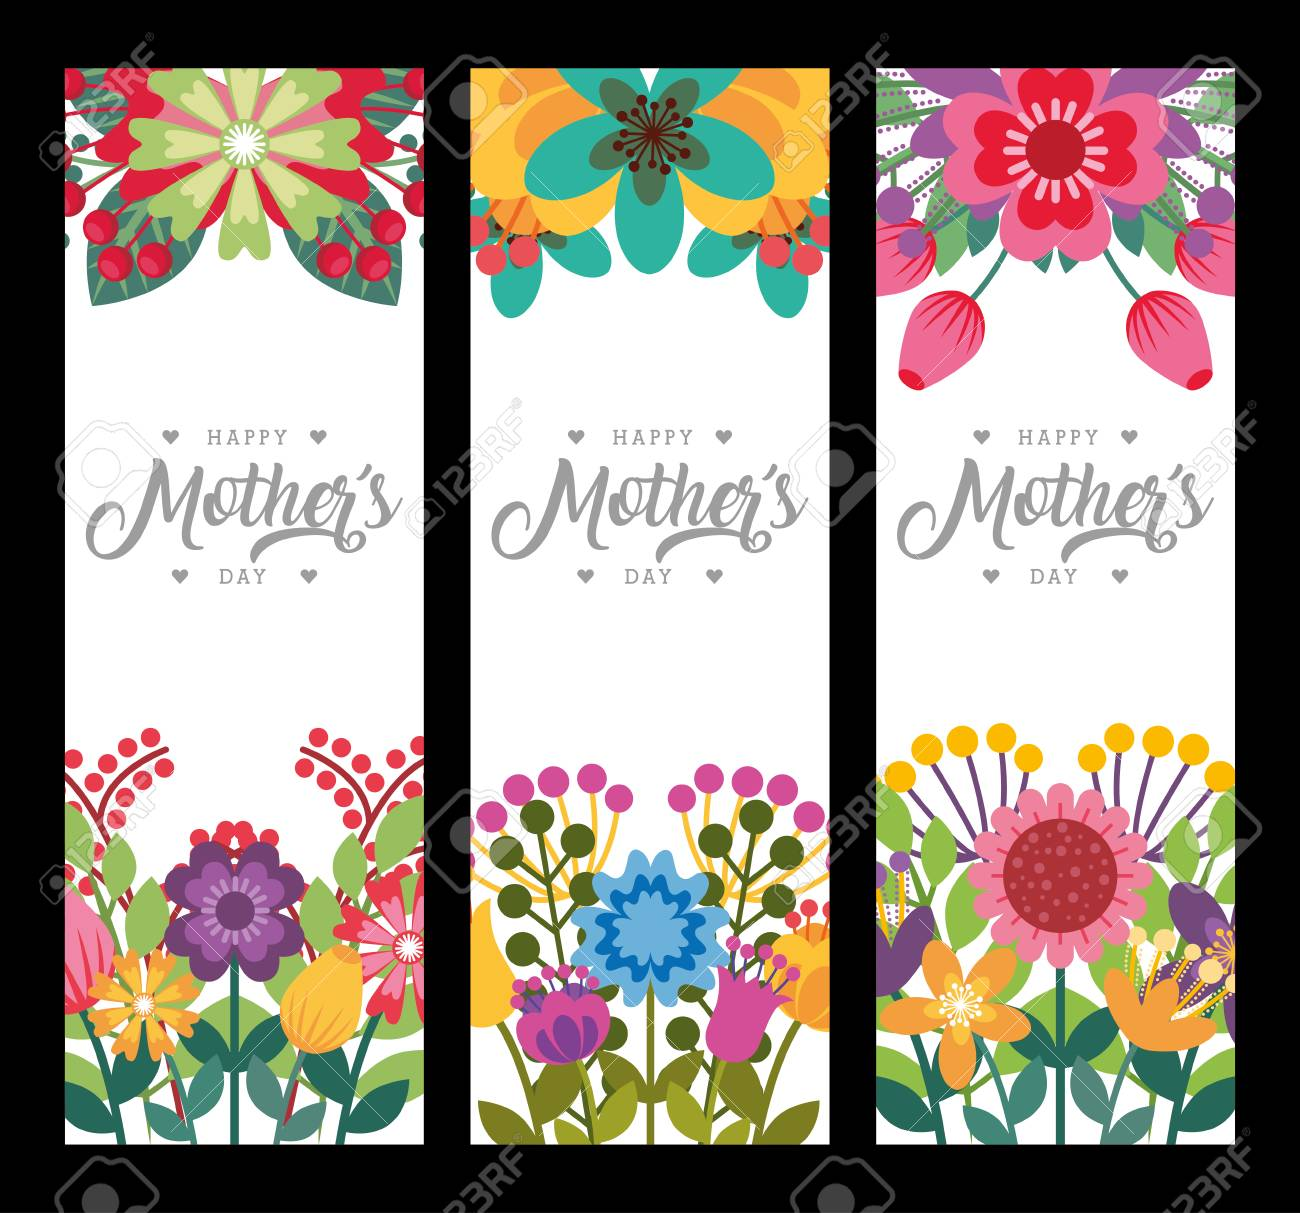 happy mothers day vertical banners delicate romantic flowers decoration vector illustration - 96503977